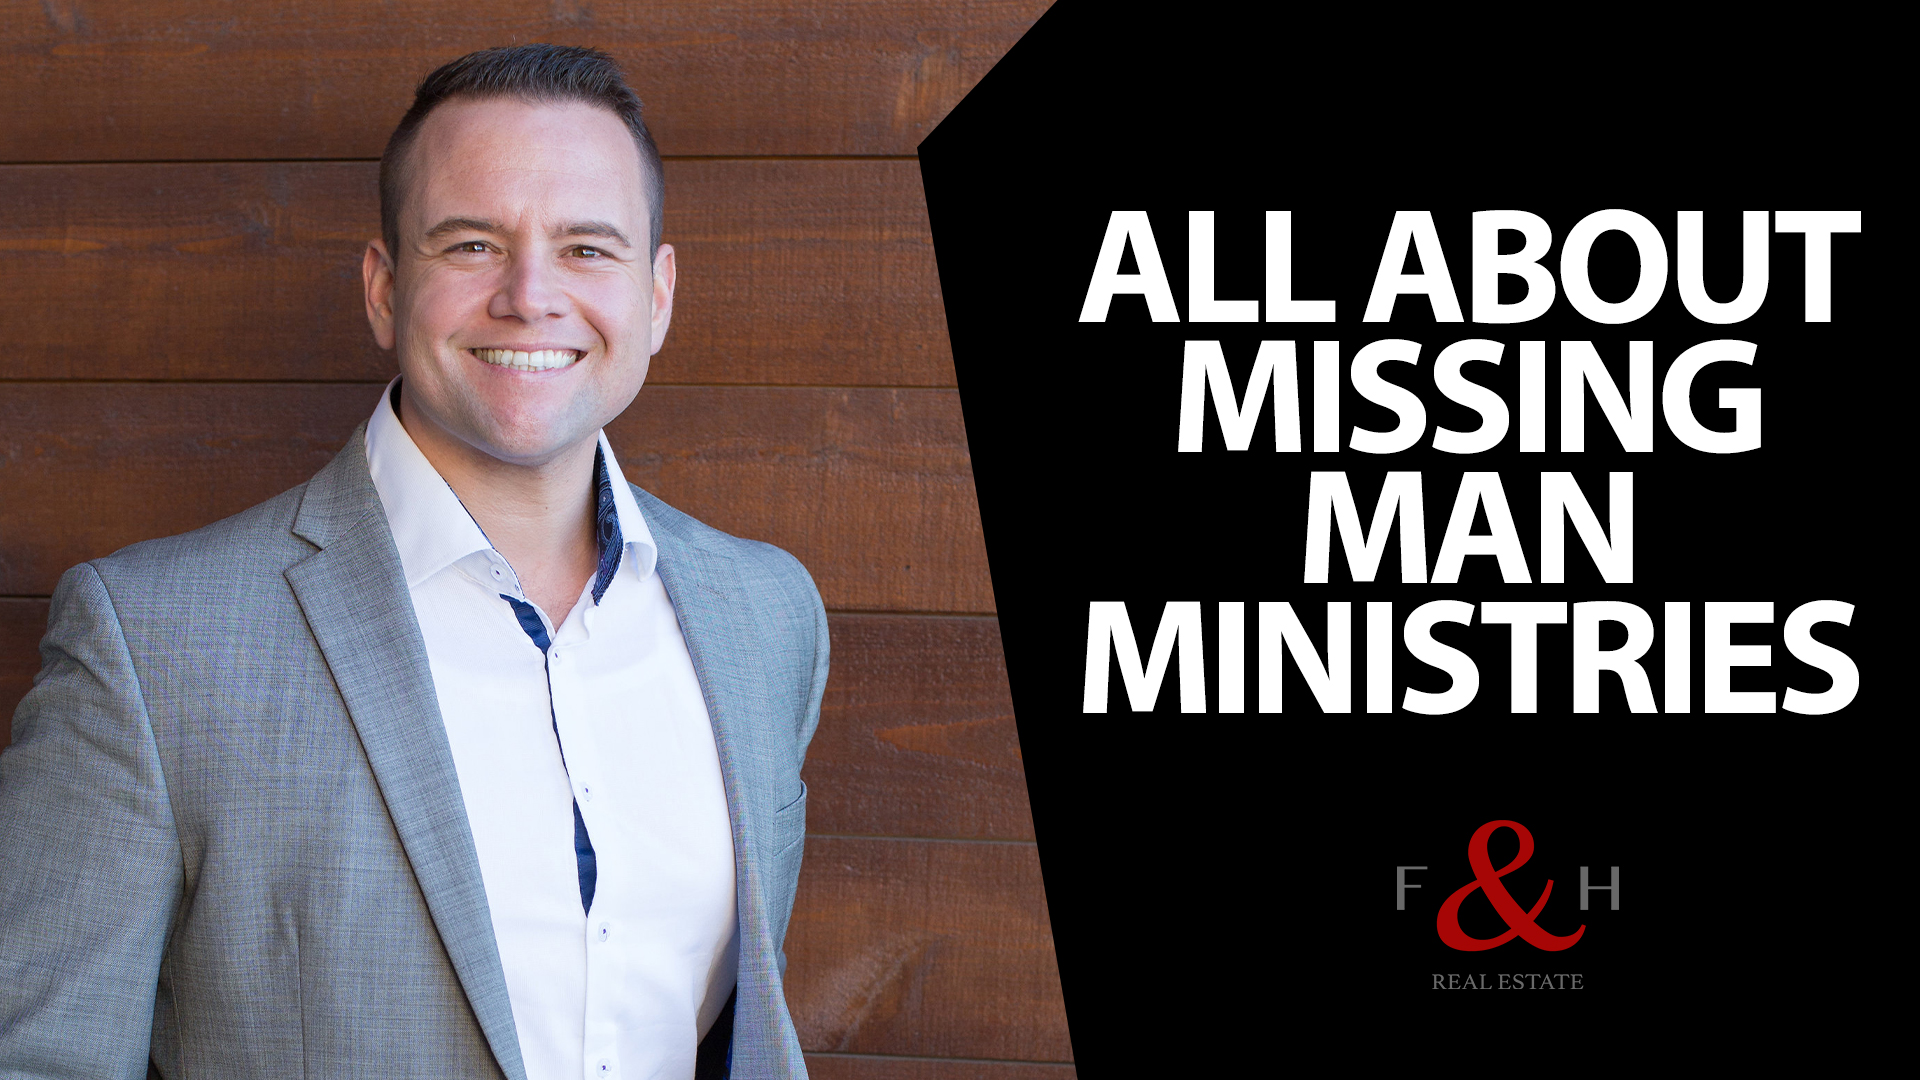 Q: What Is Missing Man Ministries?